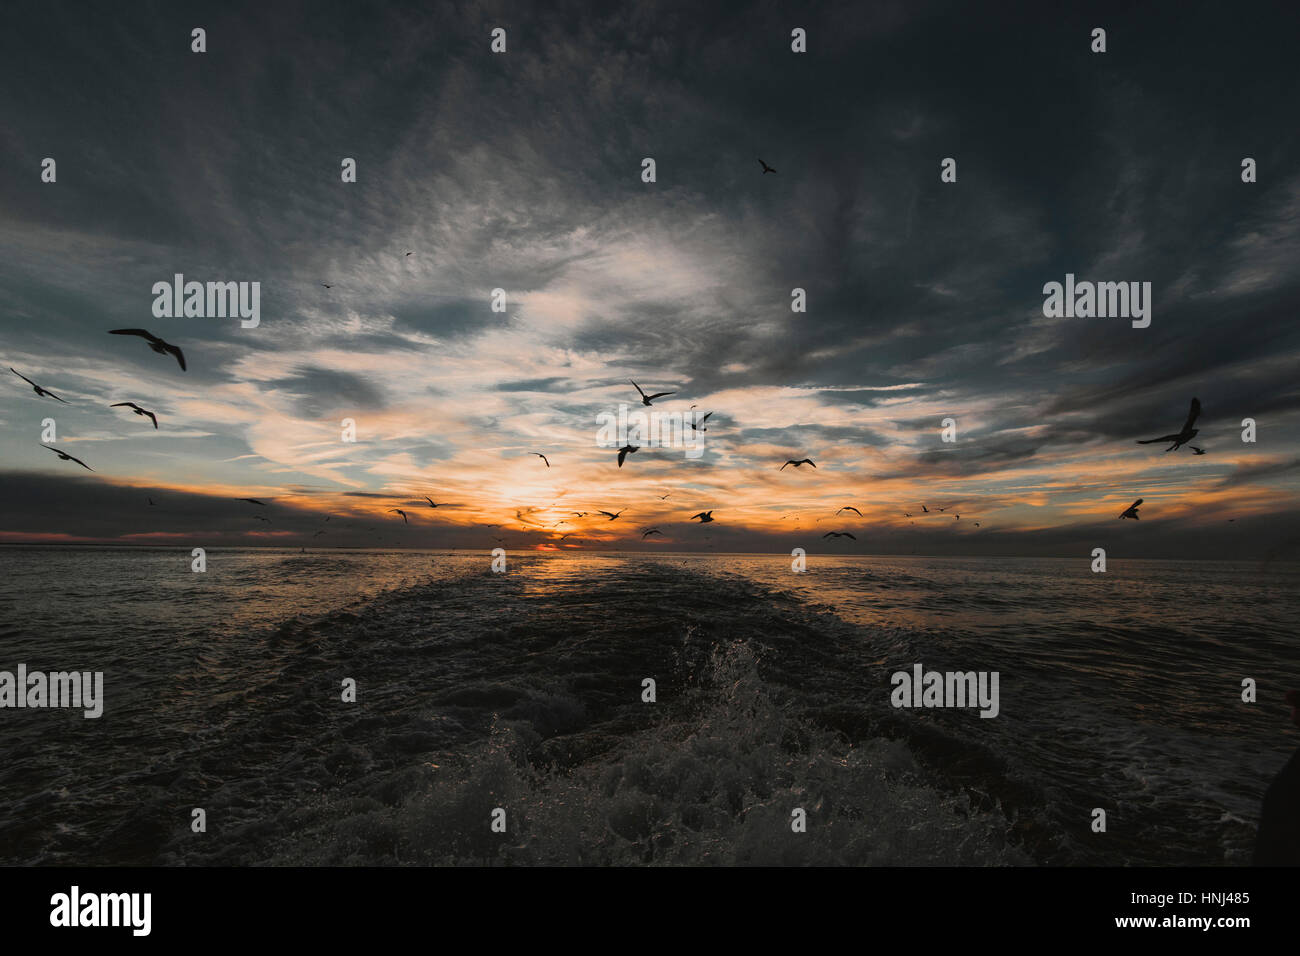 Birds flying over sea against cloudy sky during sunset Stock Photo